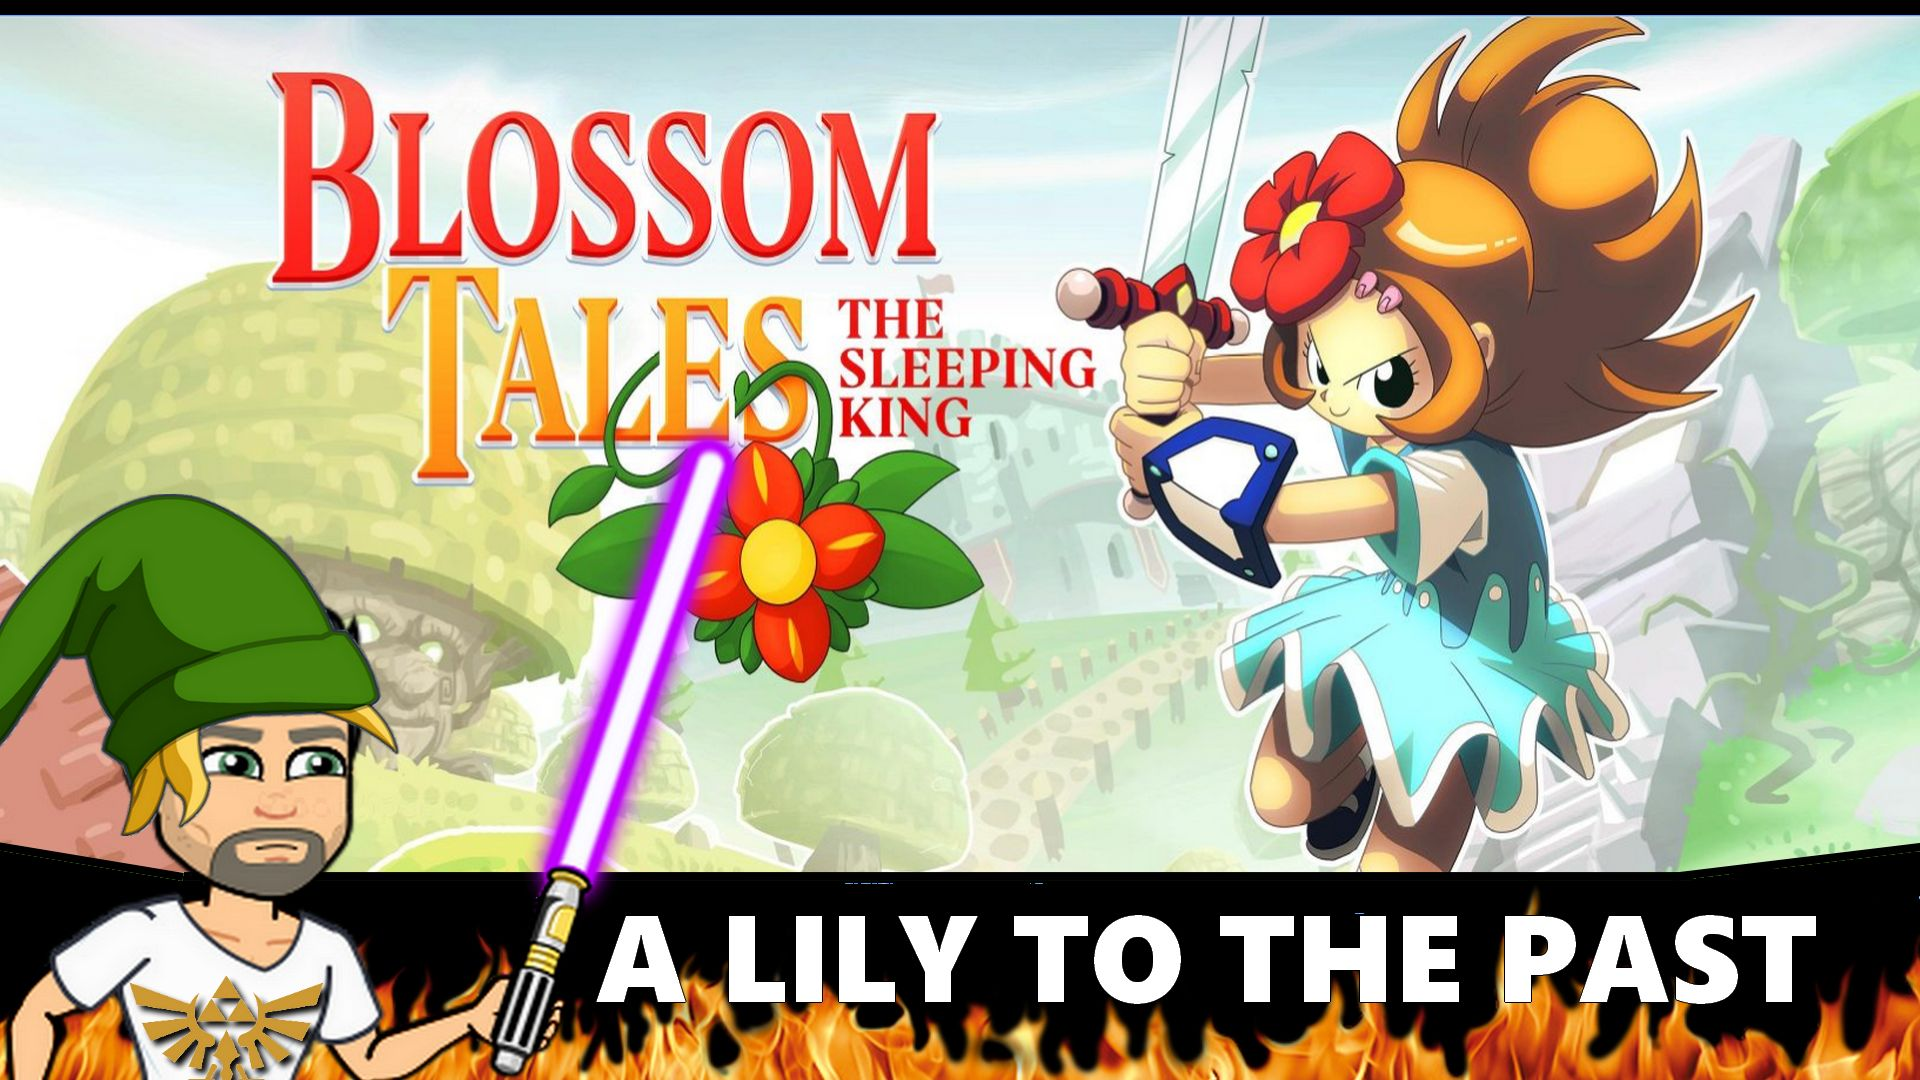 Blossom Tales The Sleeping King, le Test d'un bel hommage à Zelda A Link To The Past